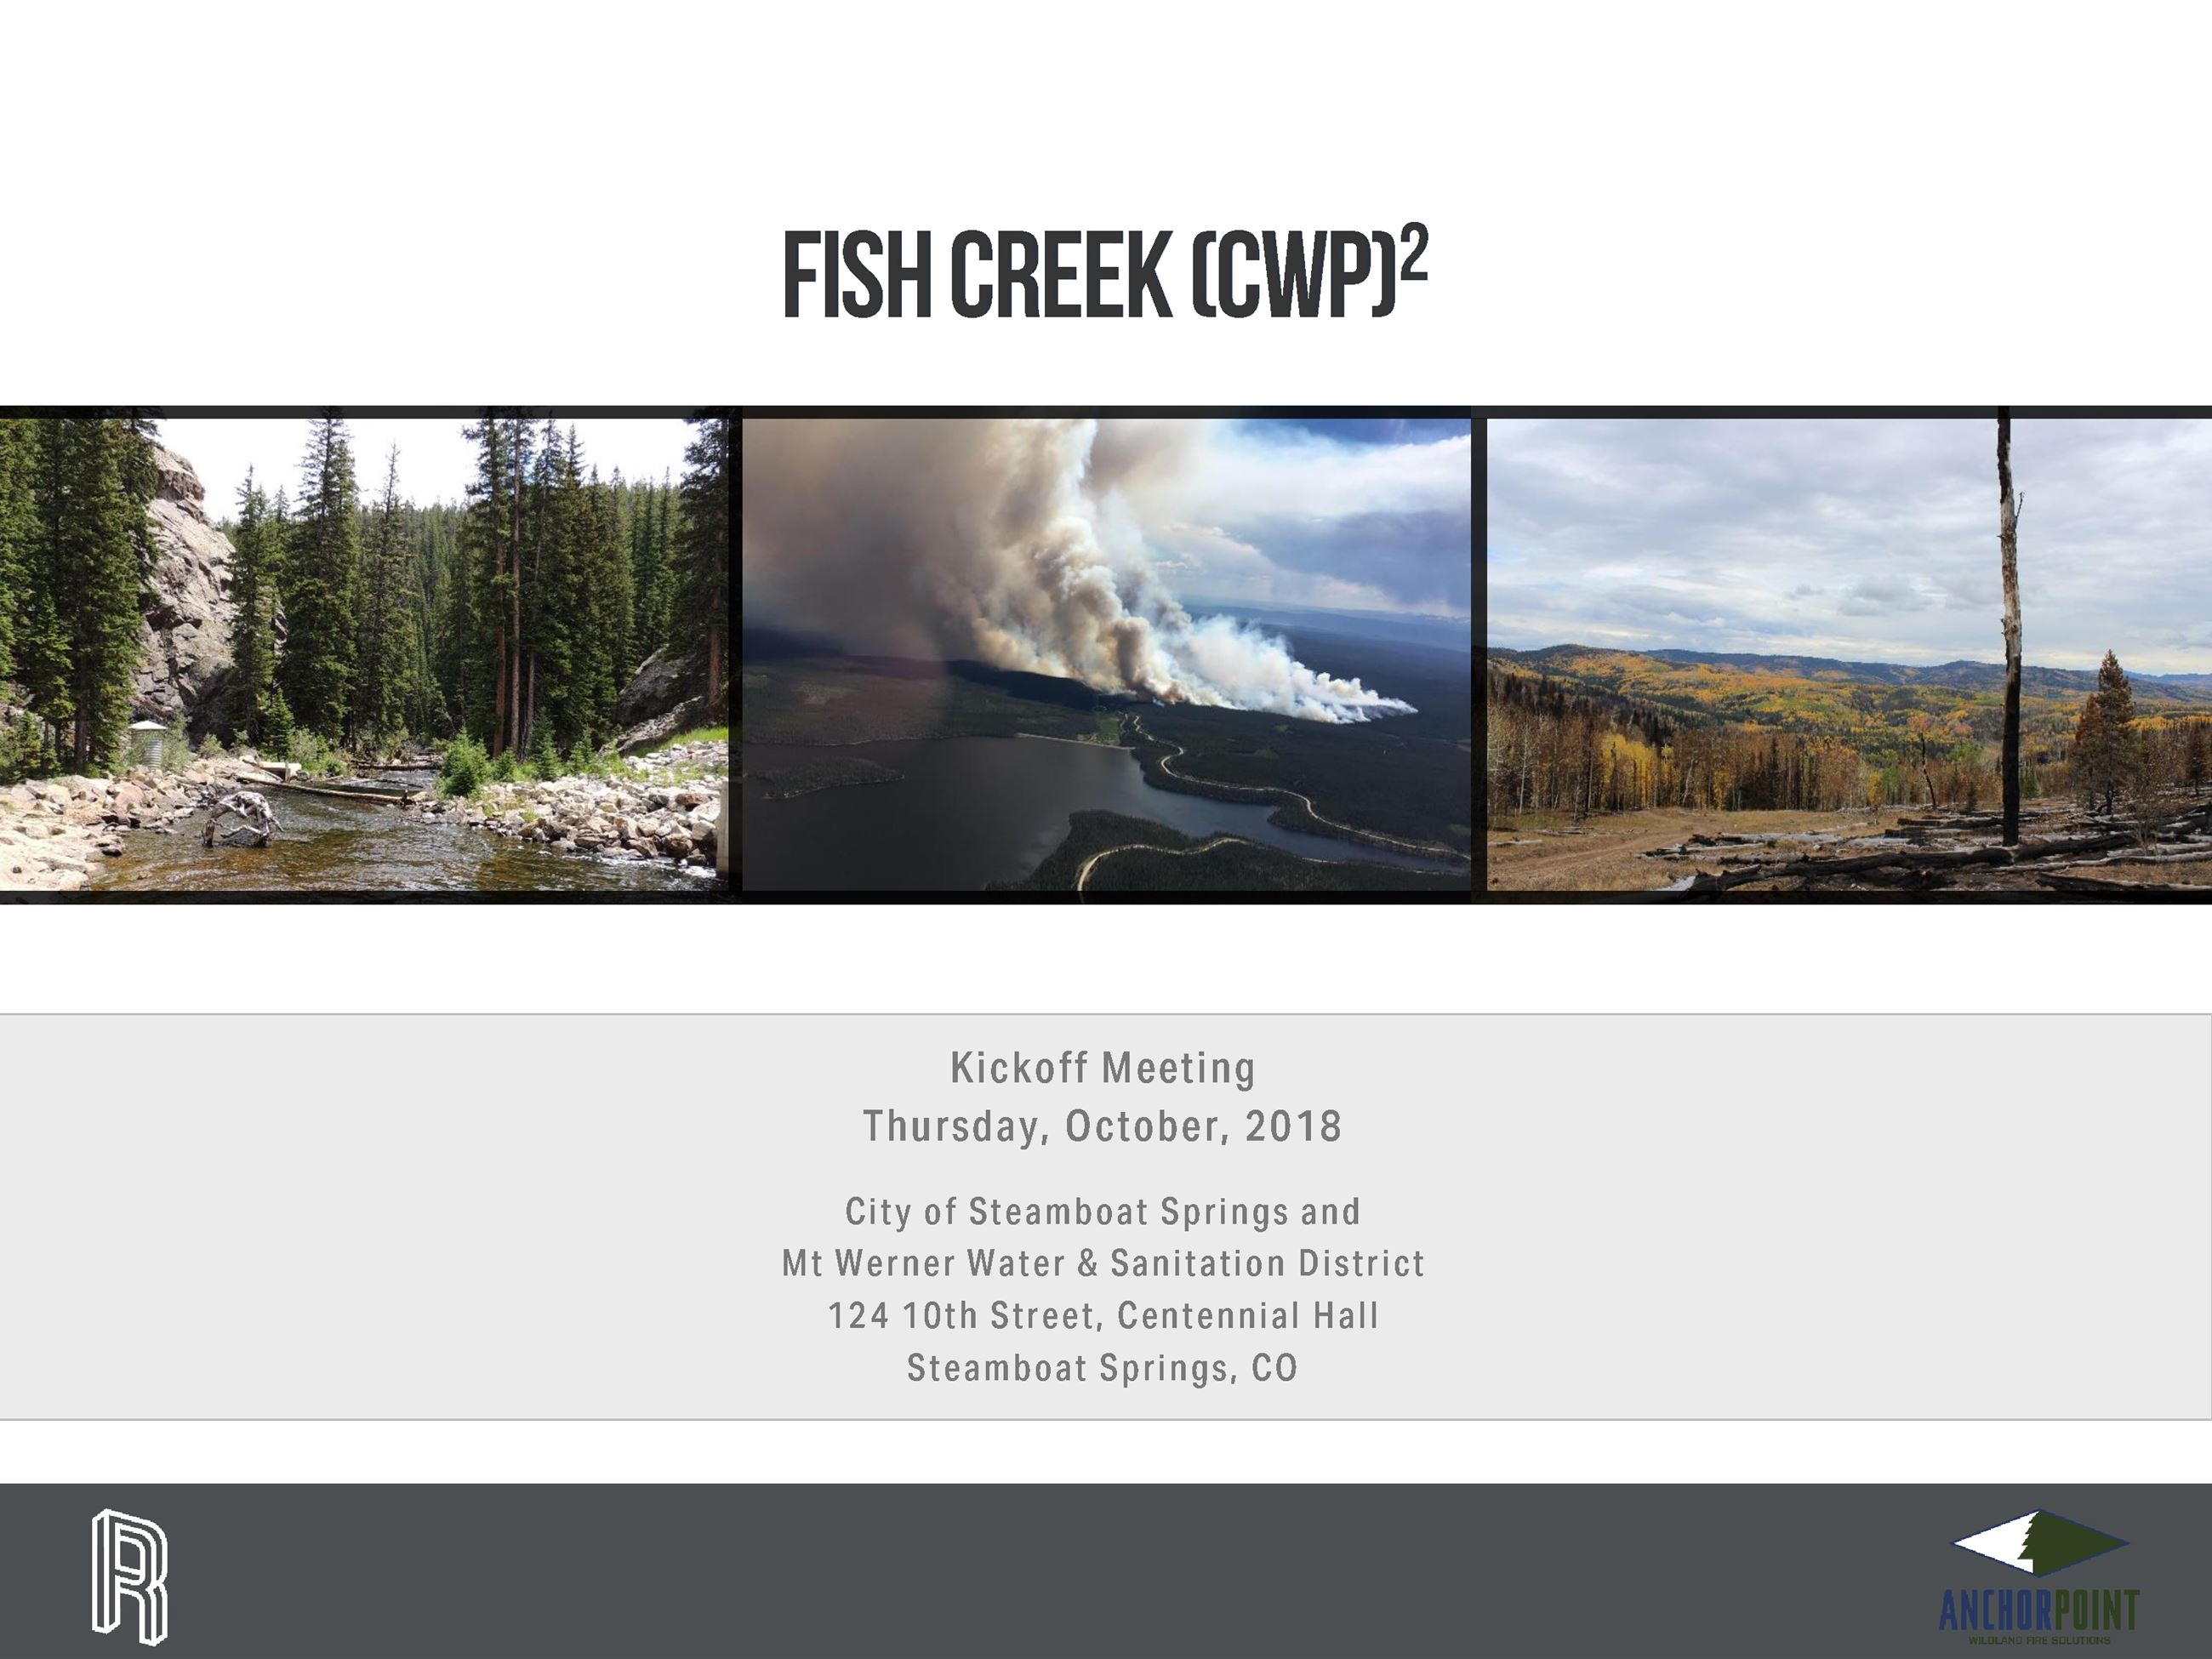 FishCreekCWP2_Kickoff Title Slide